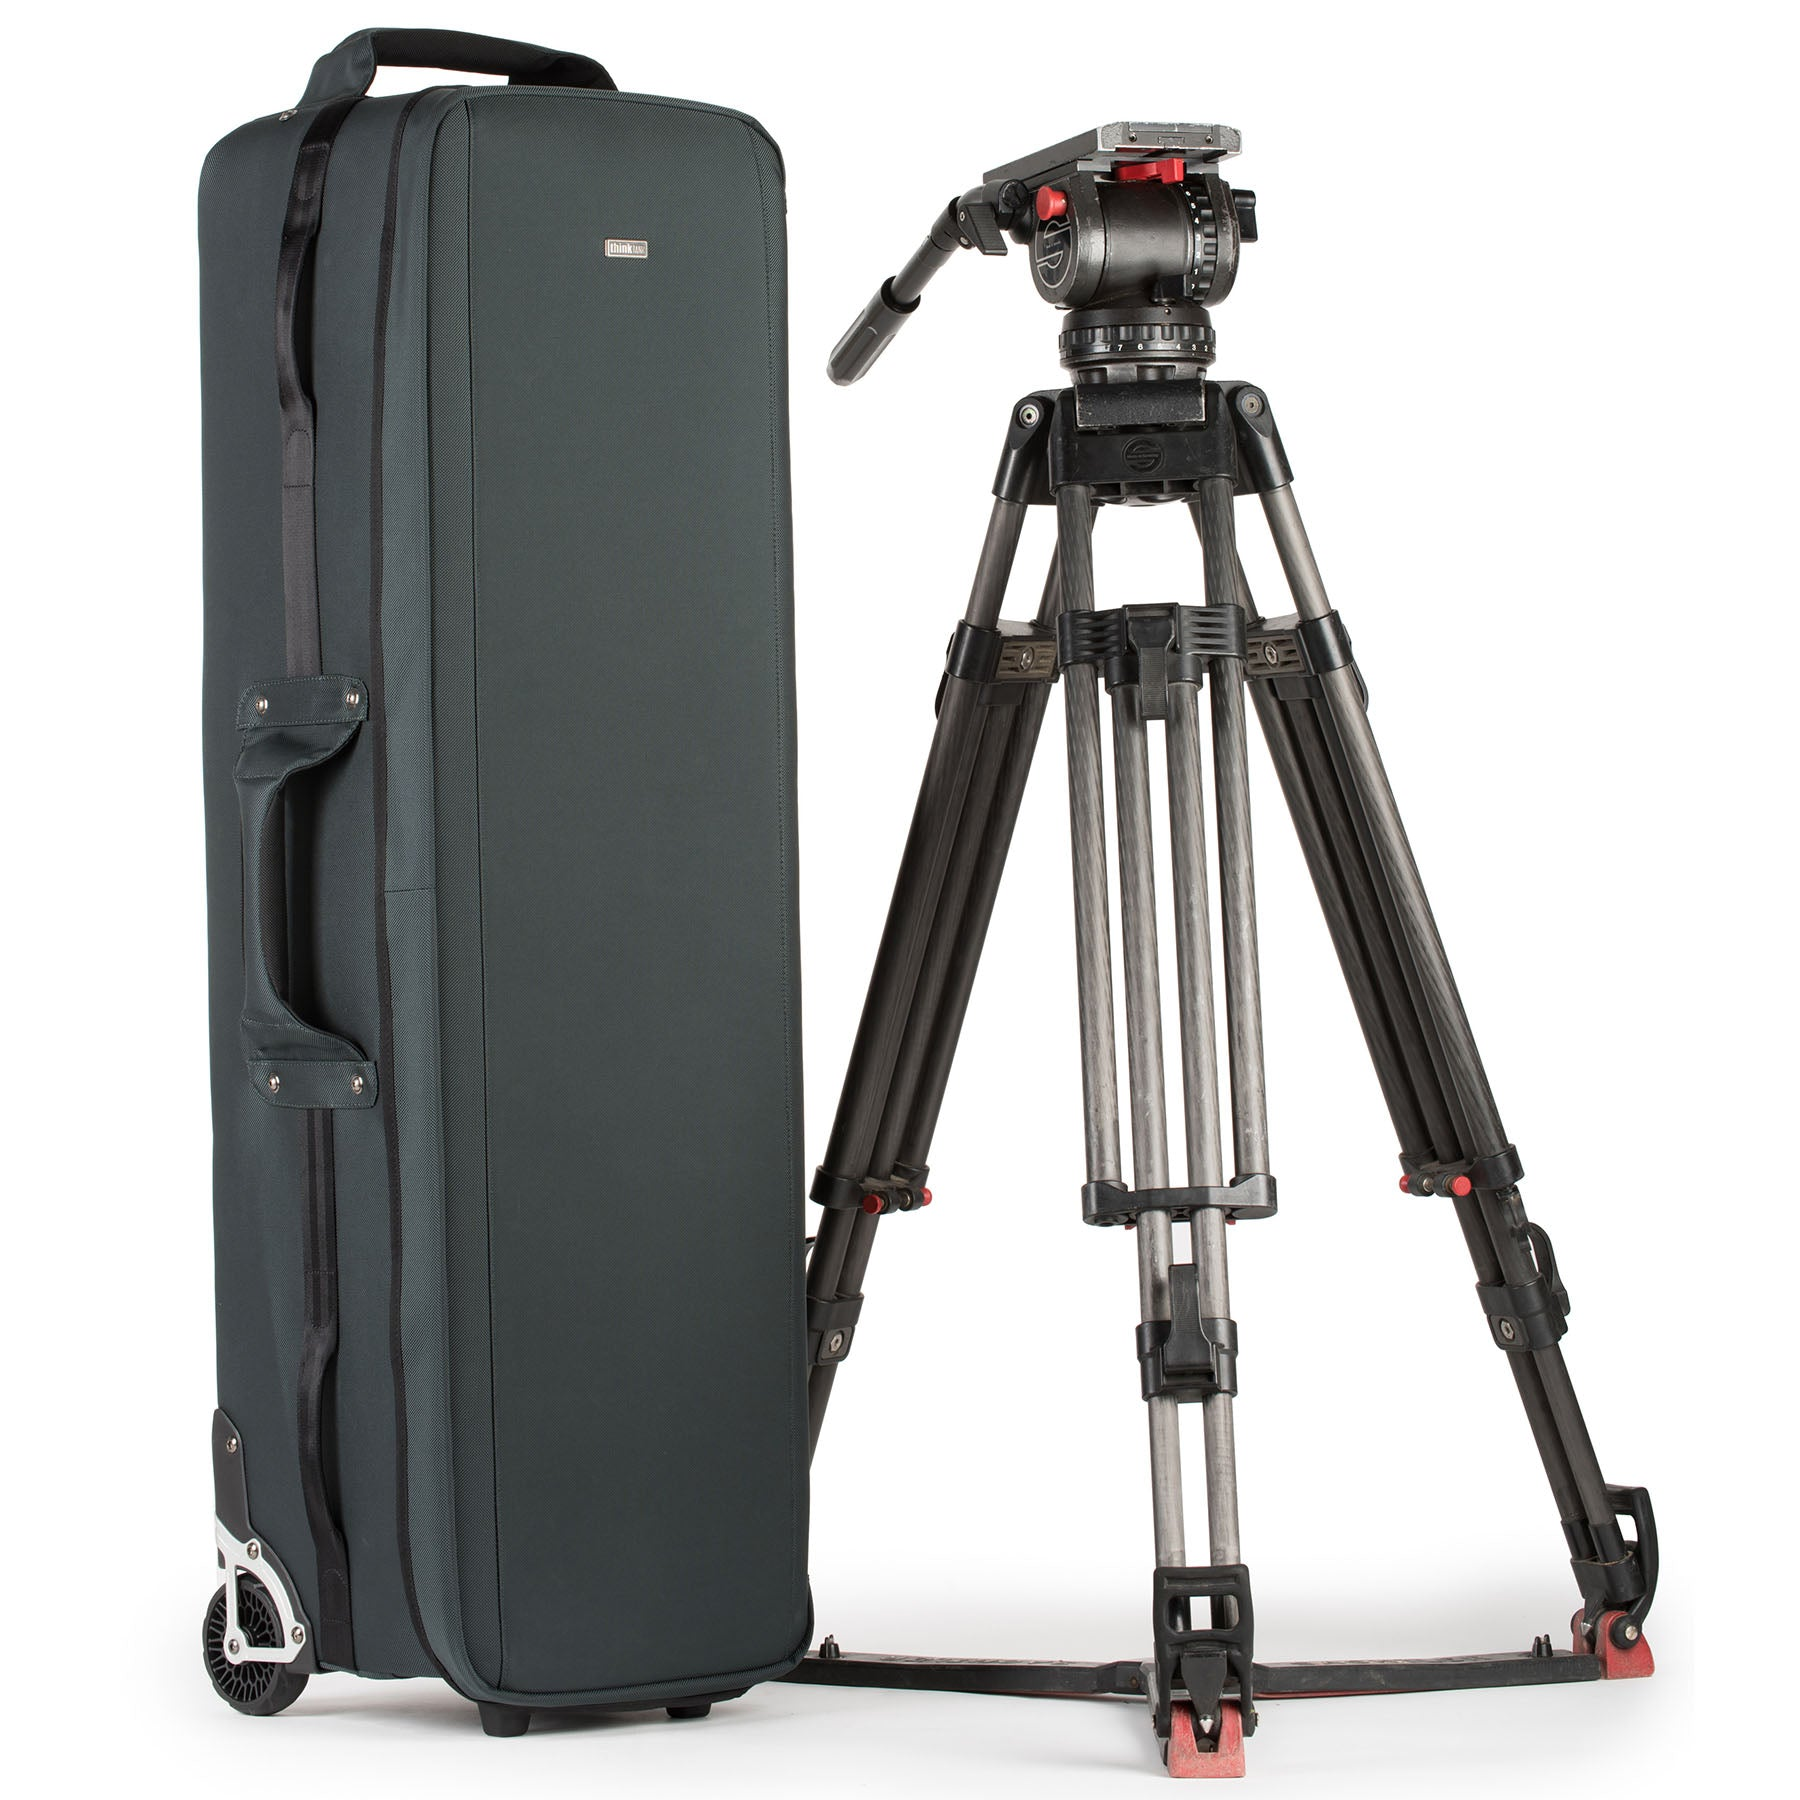 Video Tripod Manager 44 Rolling Case Provides Hard Case Protection with Soft Case Convenience